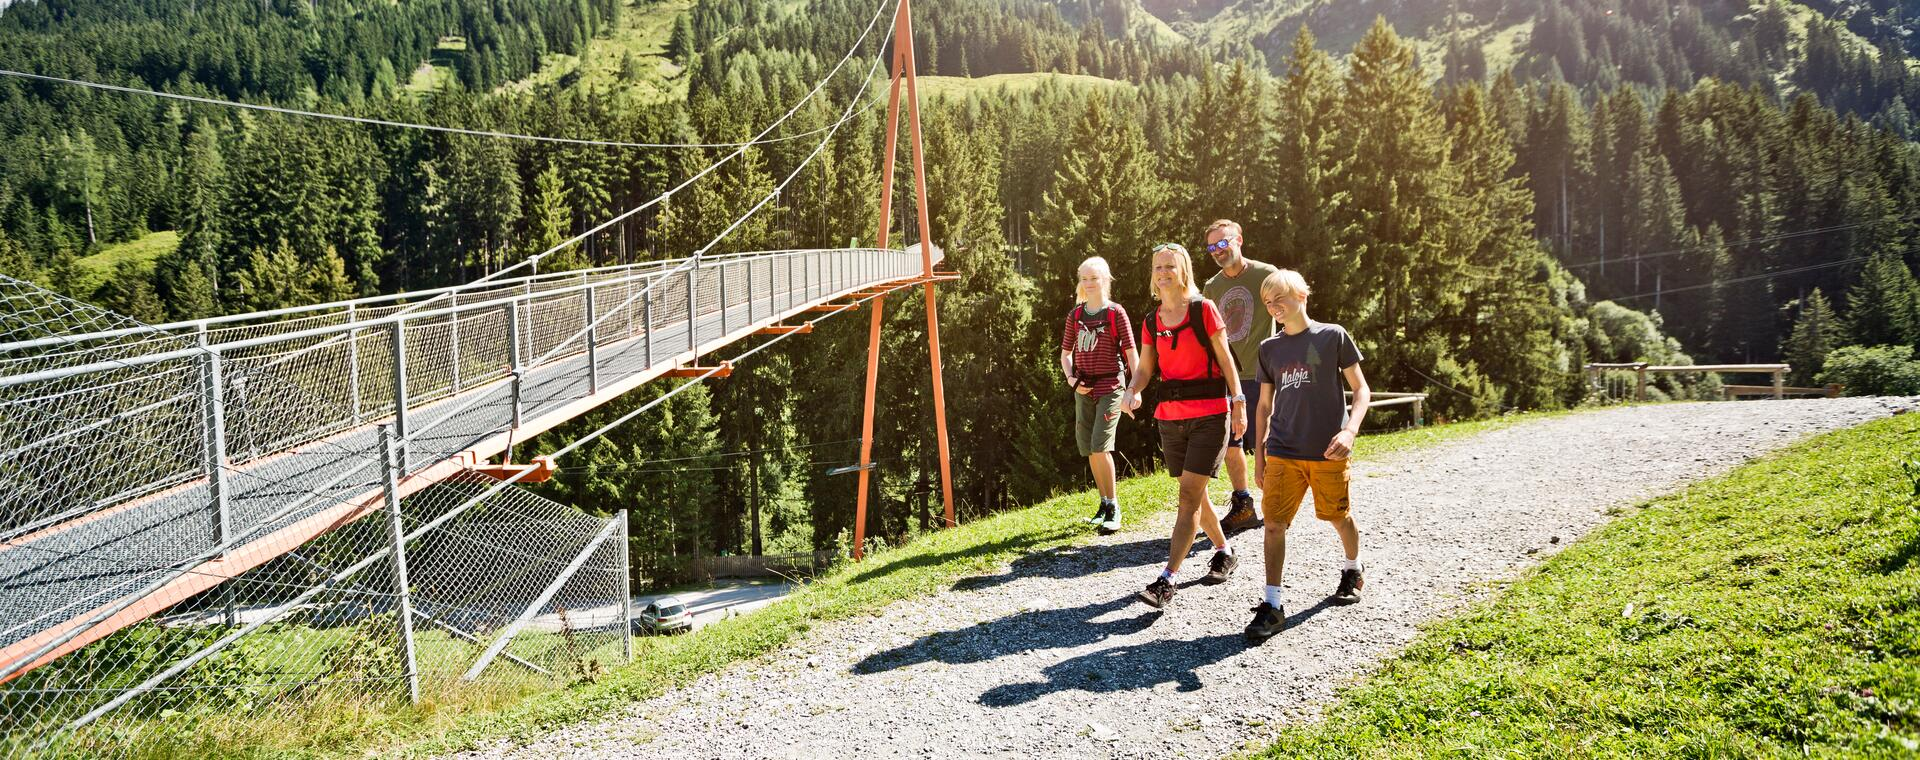 hiking with children Saalbach-Hinterglemm | © © saalbach.com, Mirja Geh